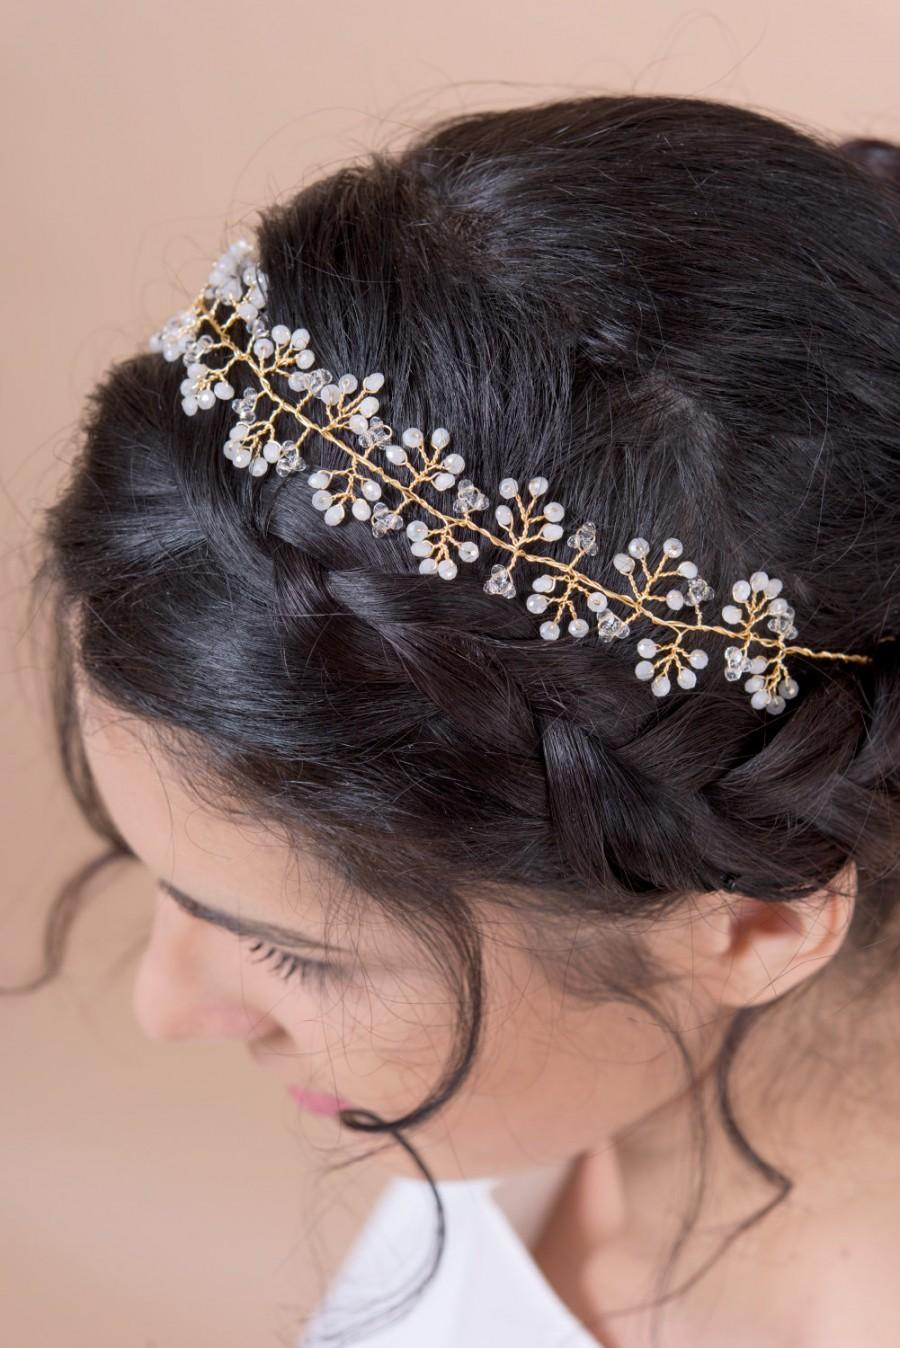 Mariage - Hair vine headband bridal hair accessories hair wreath with hand wired crystals